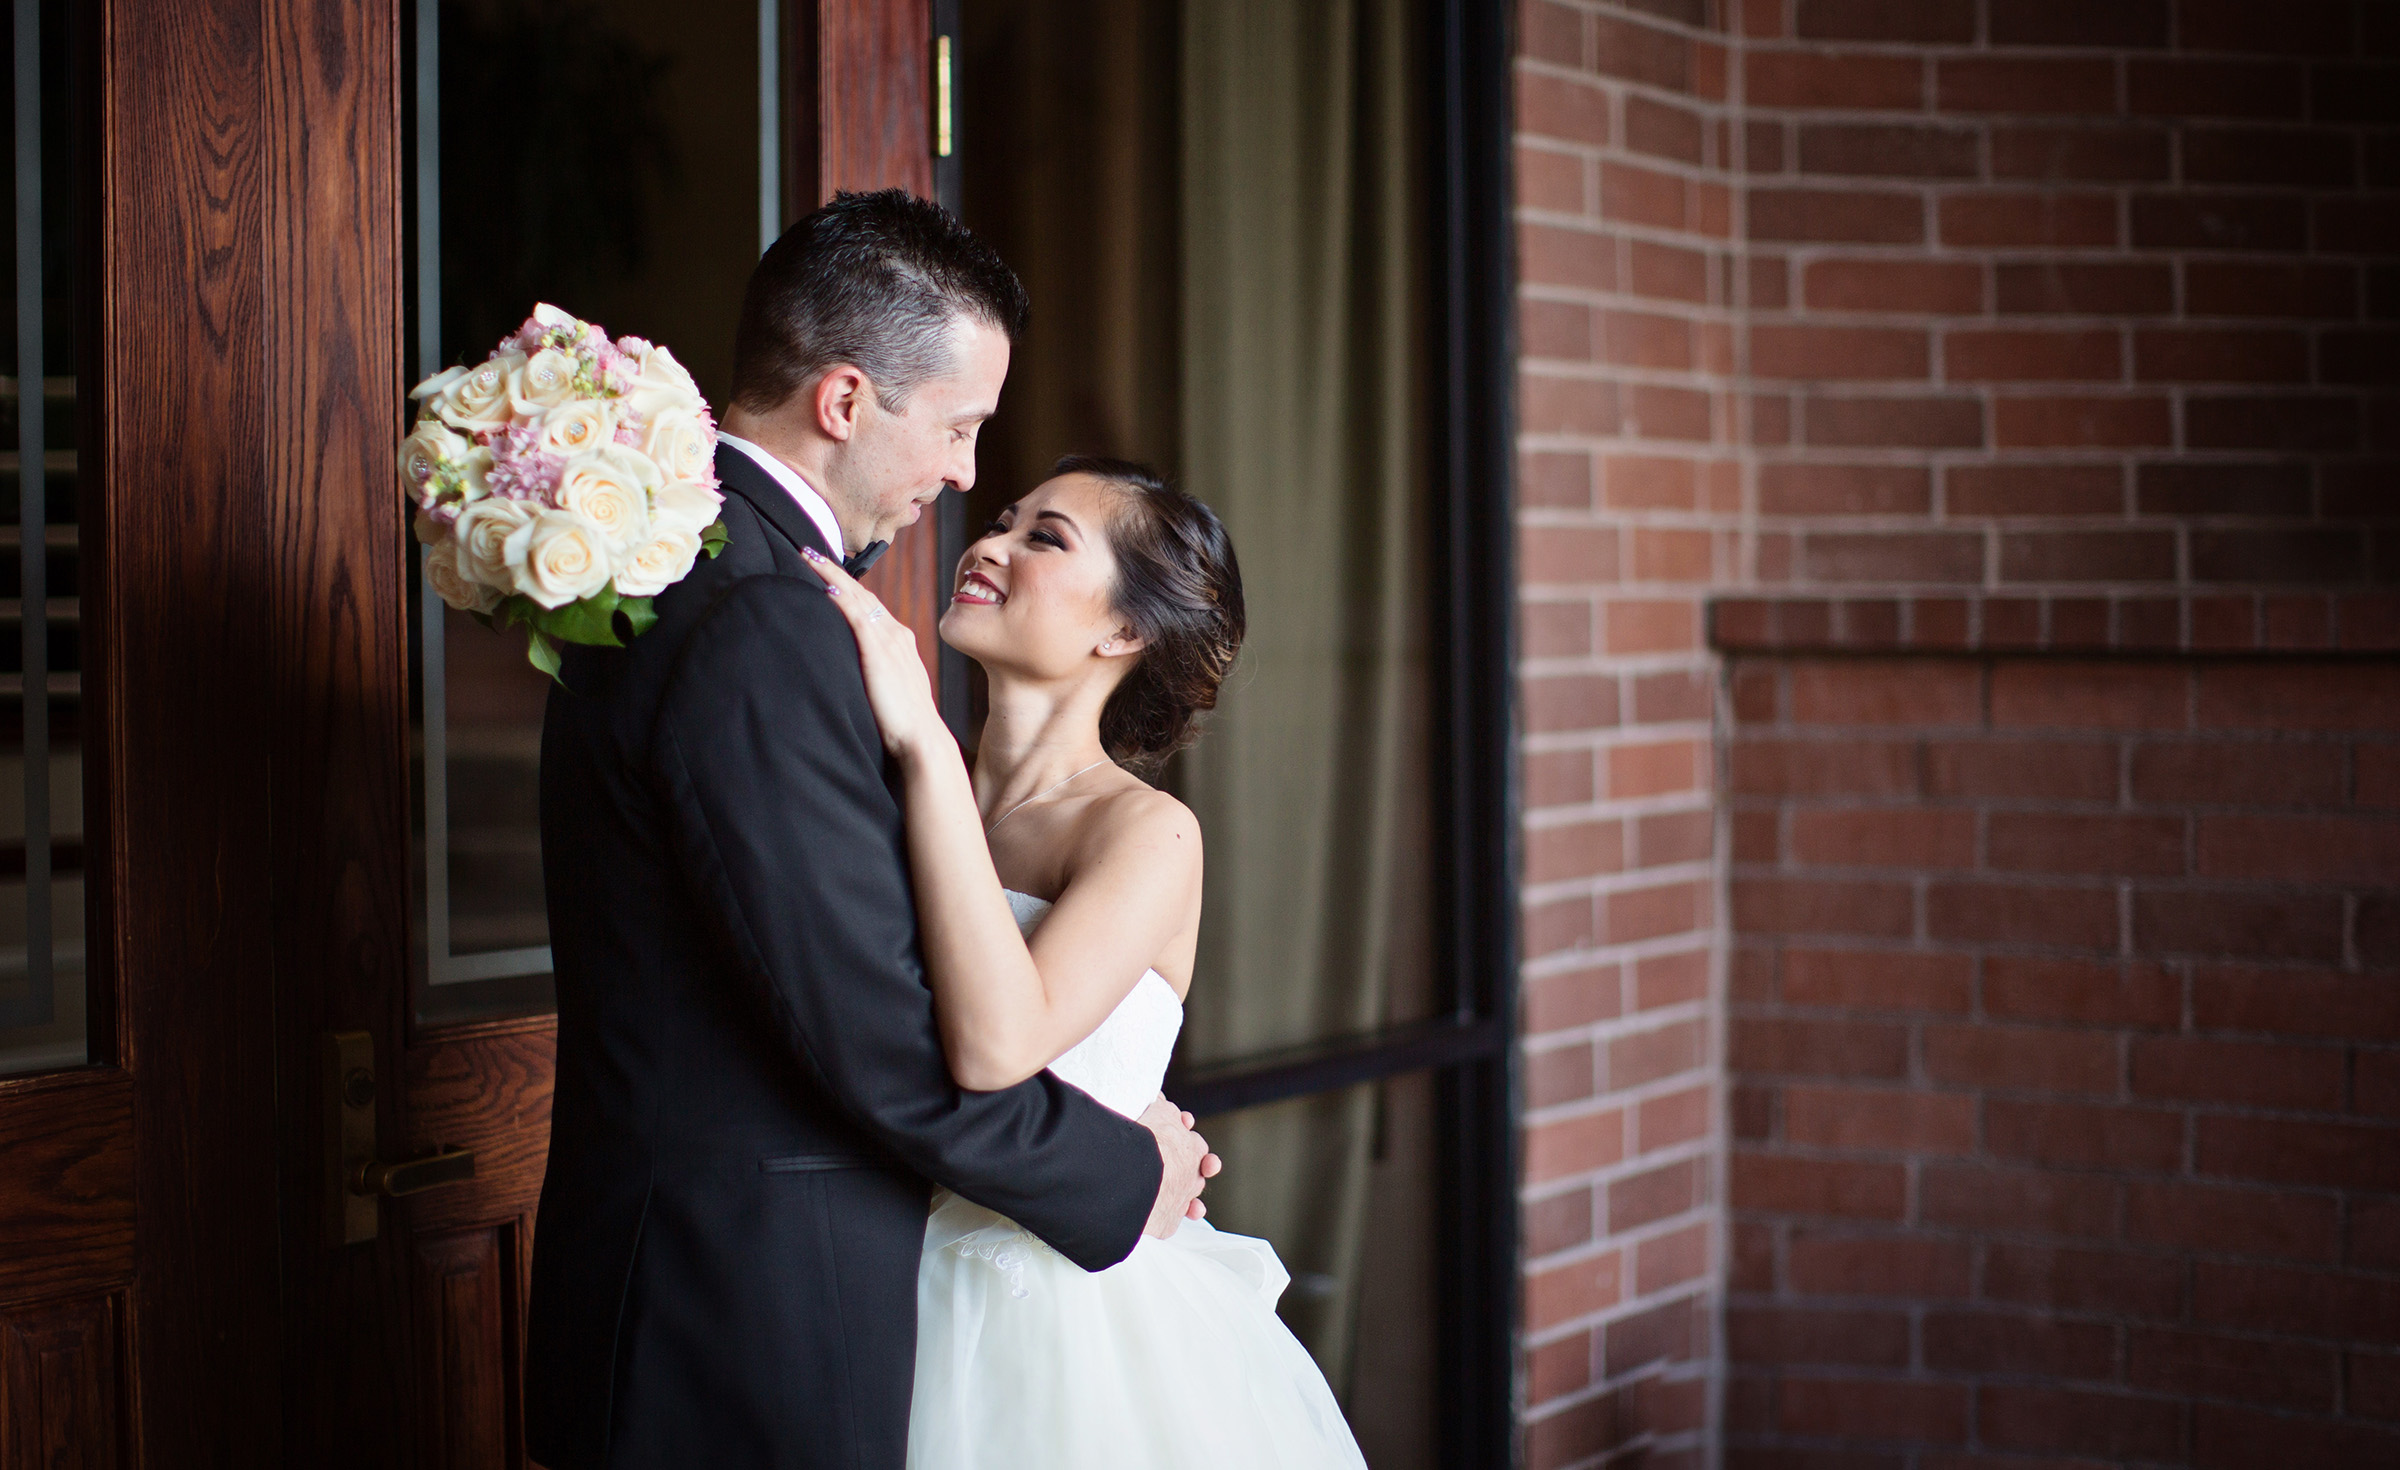 Happy couple - Sierra La Verne - La Verne, California - Claremont Area - Los Angeles County - Wedgewood Weddings